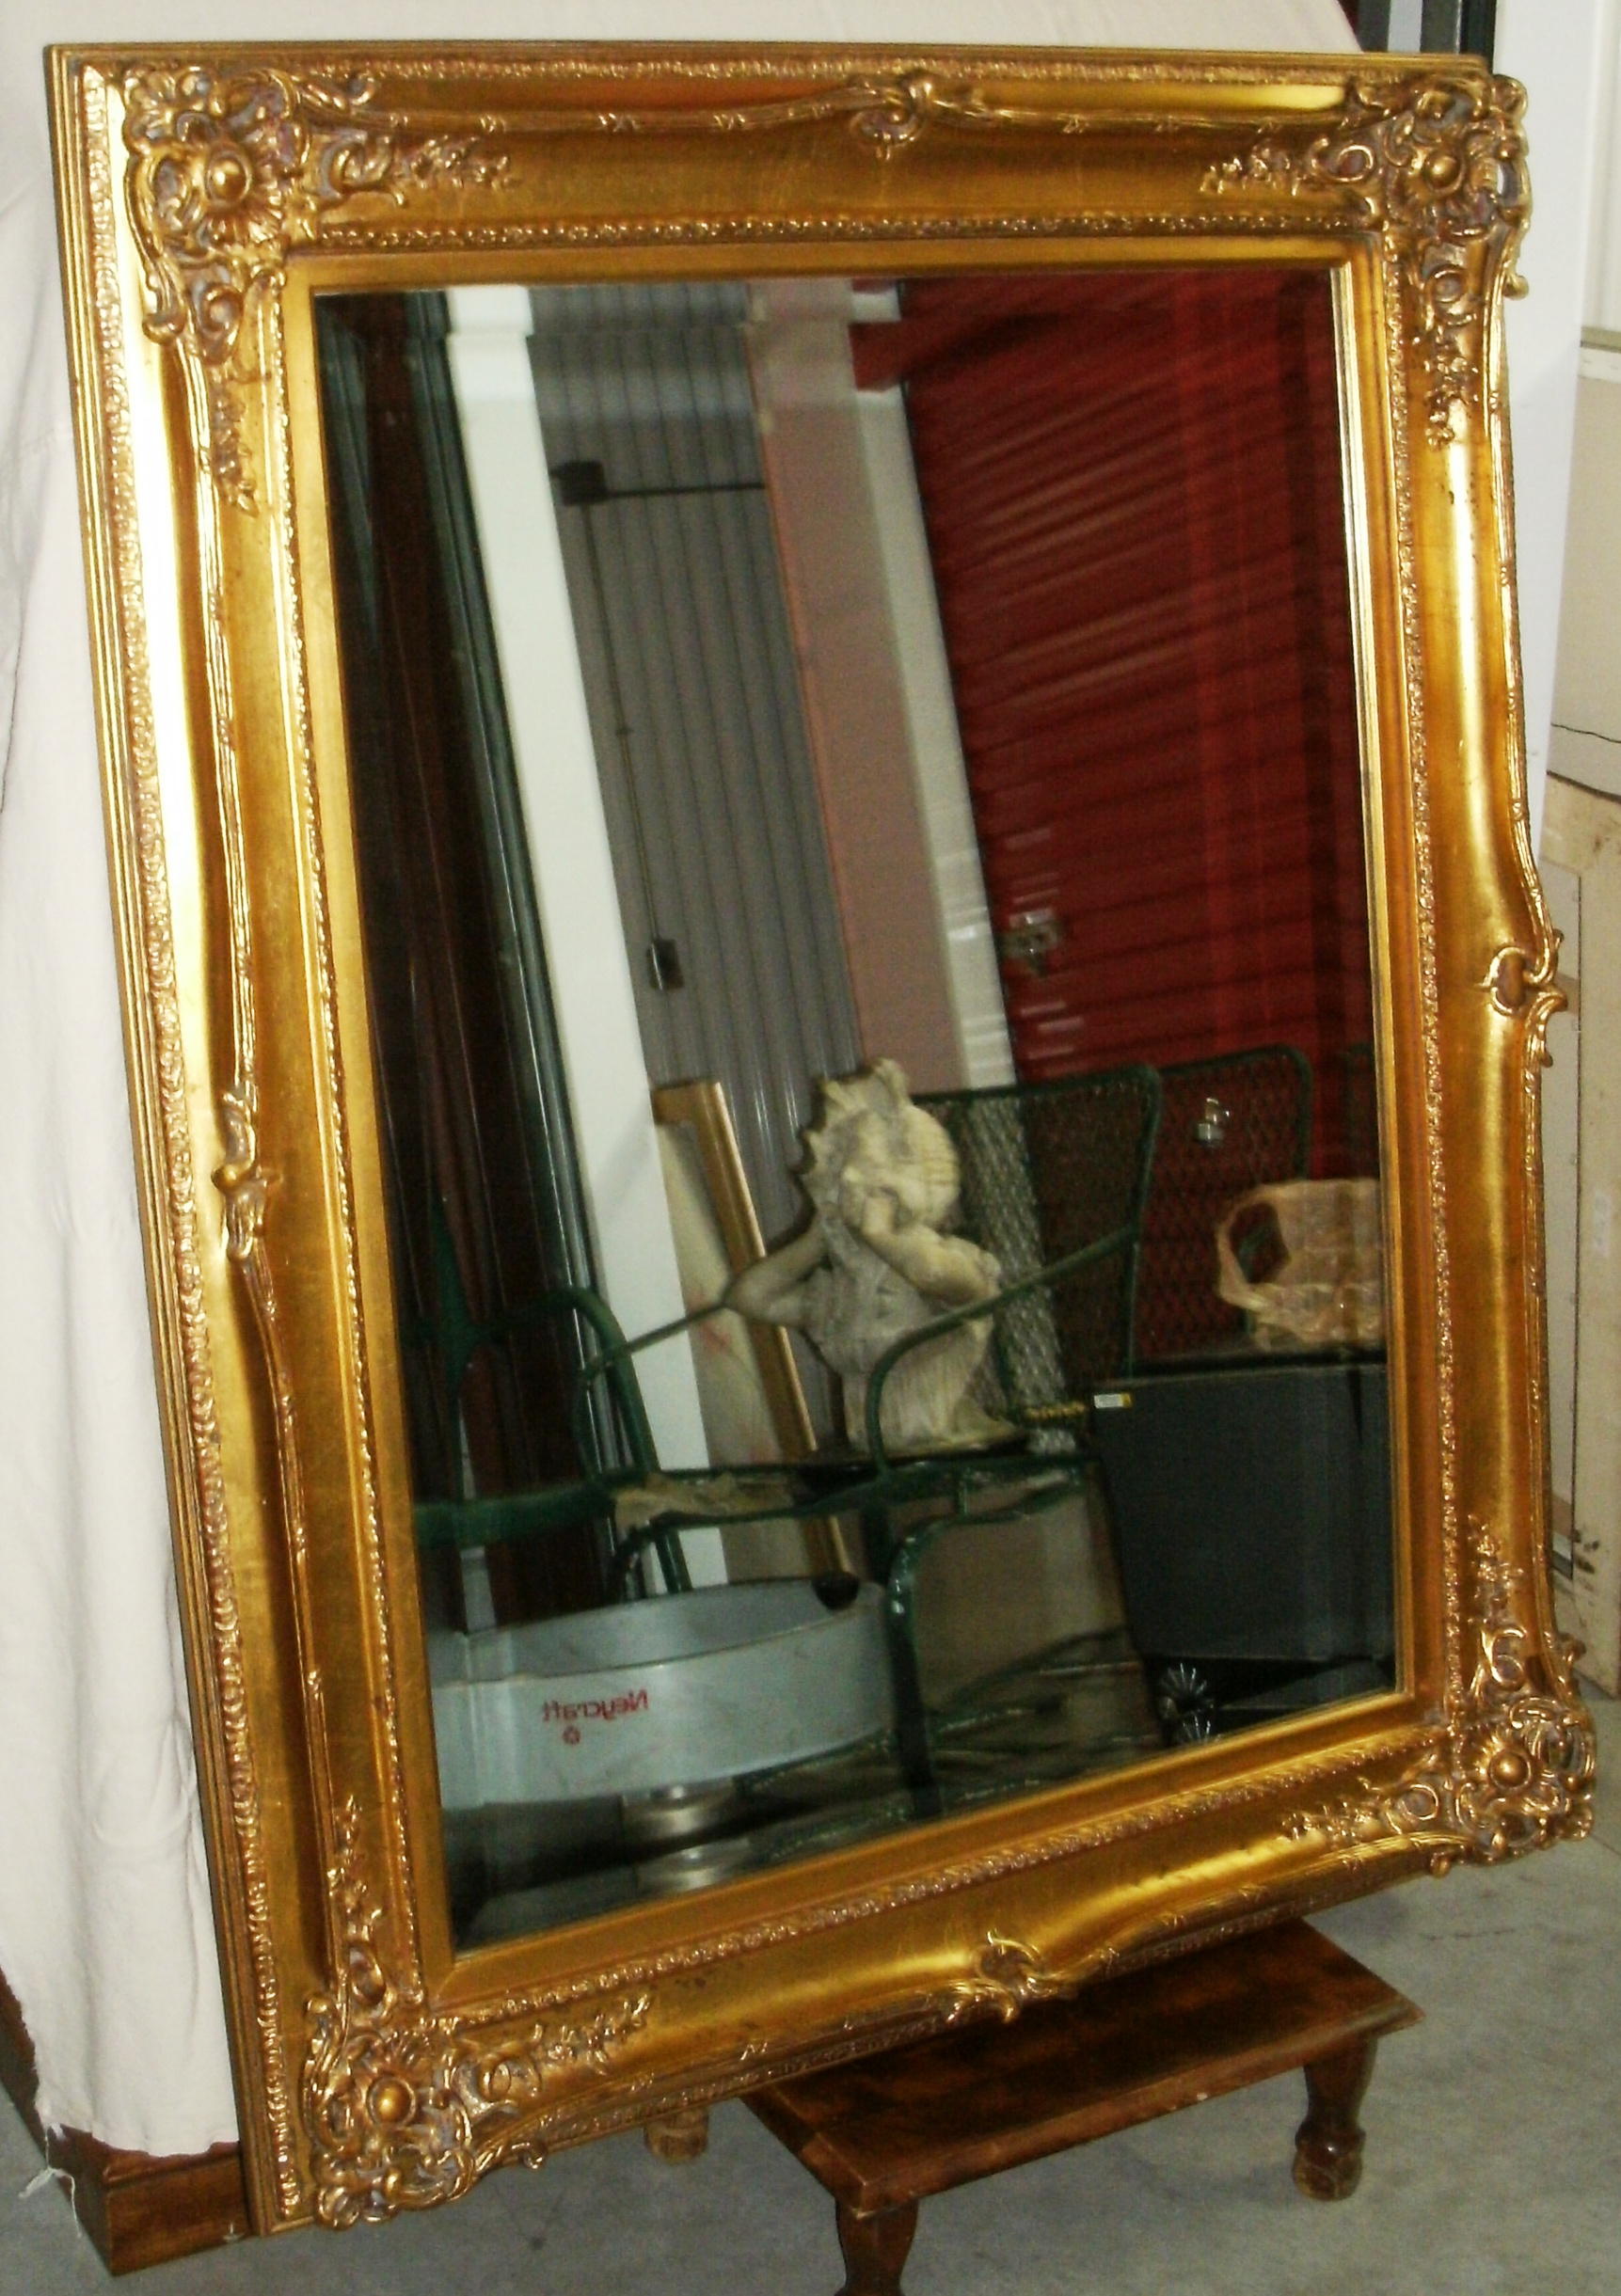 Large Ornate Gold Toned Beveled Mirror Approximate Dimensions H 51 X W 41 175 Customer Pickup Extra